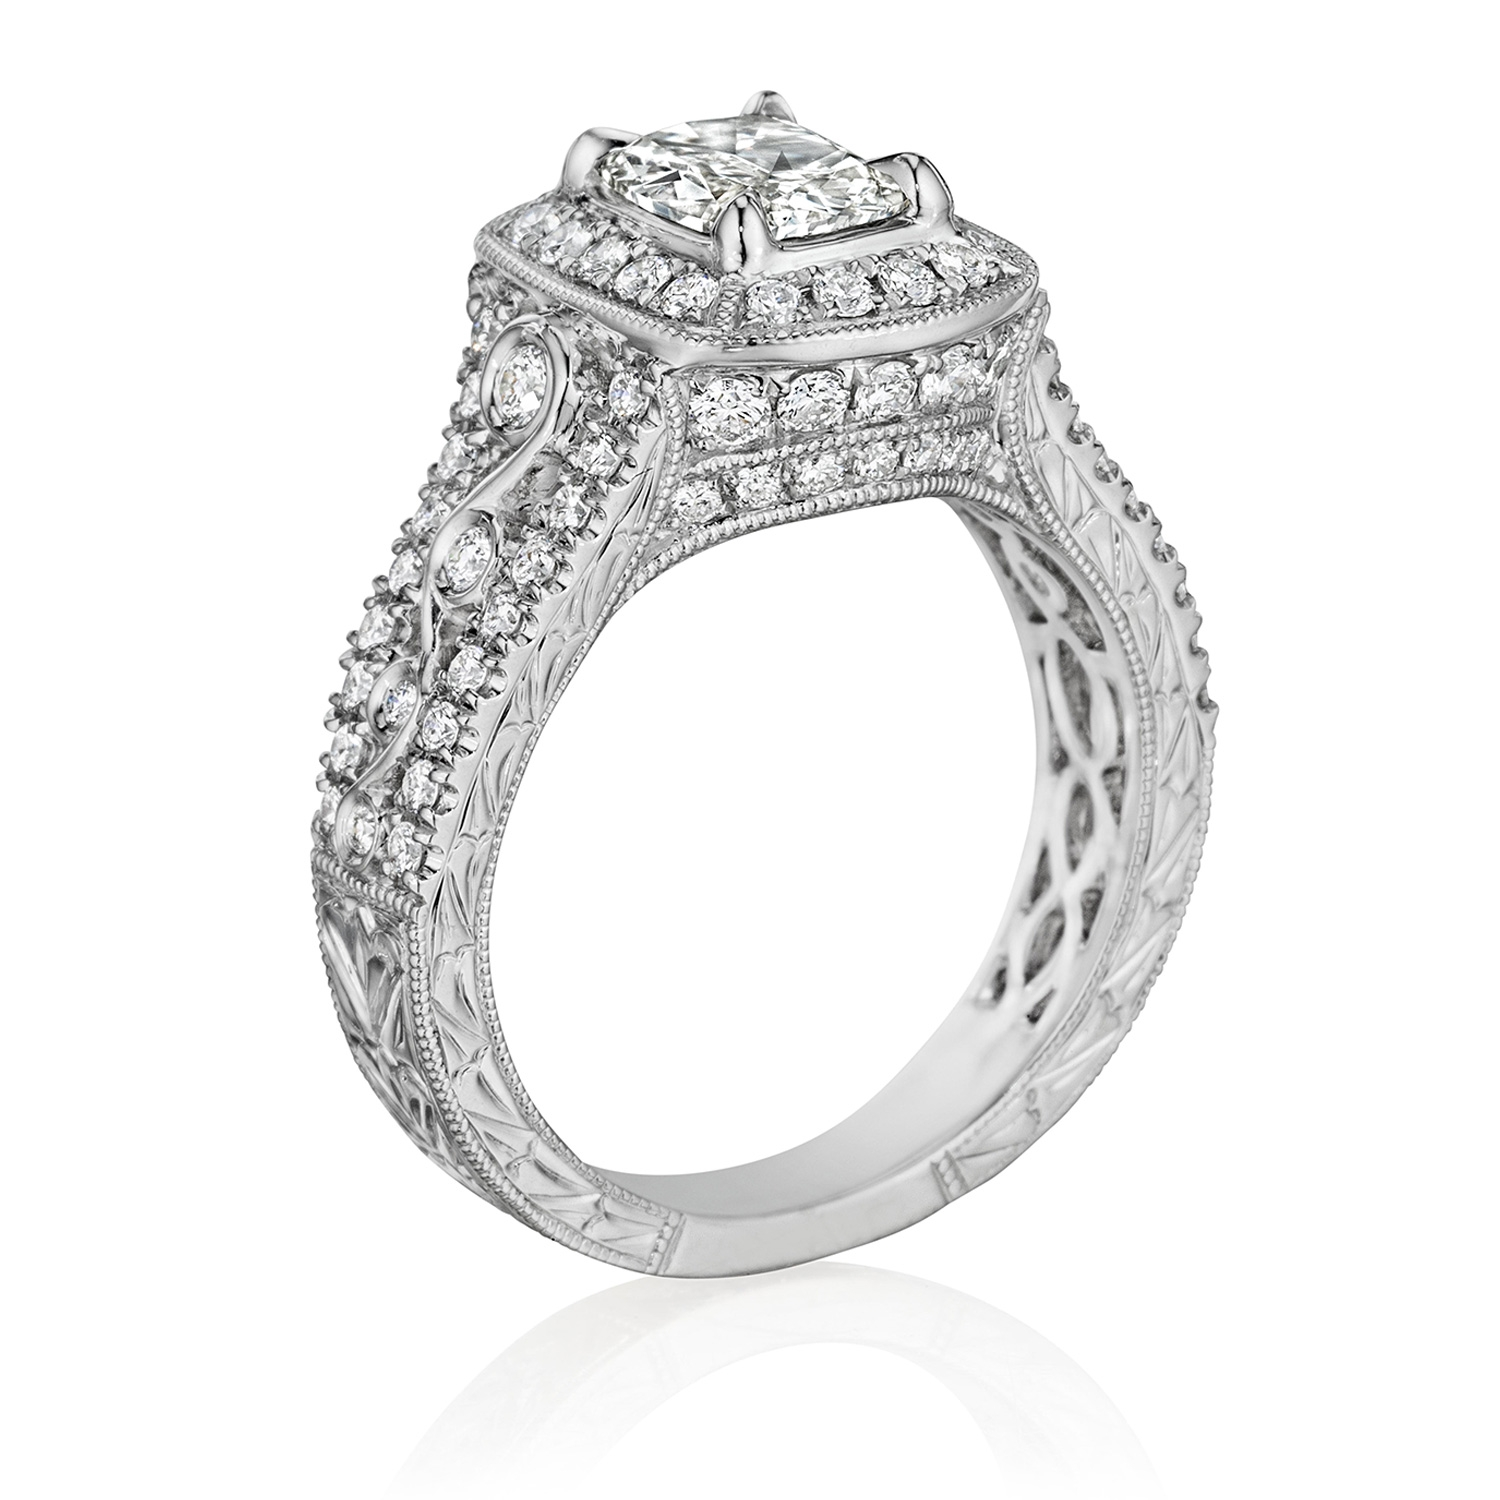 Henri Daussi AKJF Cushion Antique Halo Diamond Engagement Ring Alternative View 1